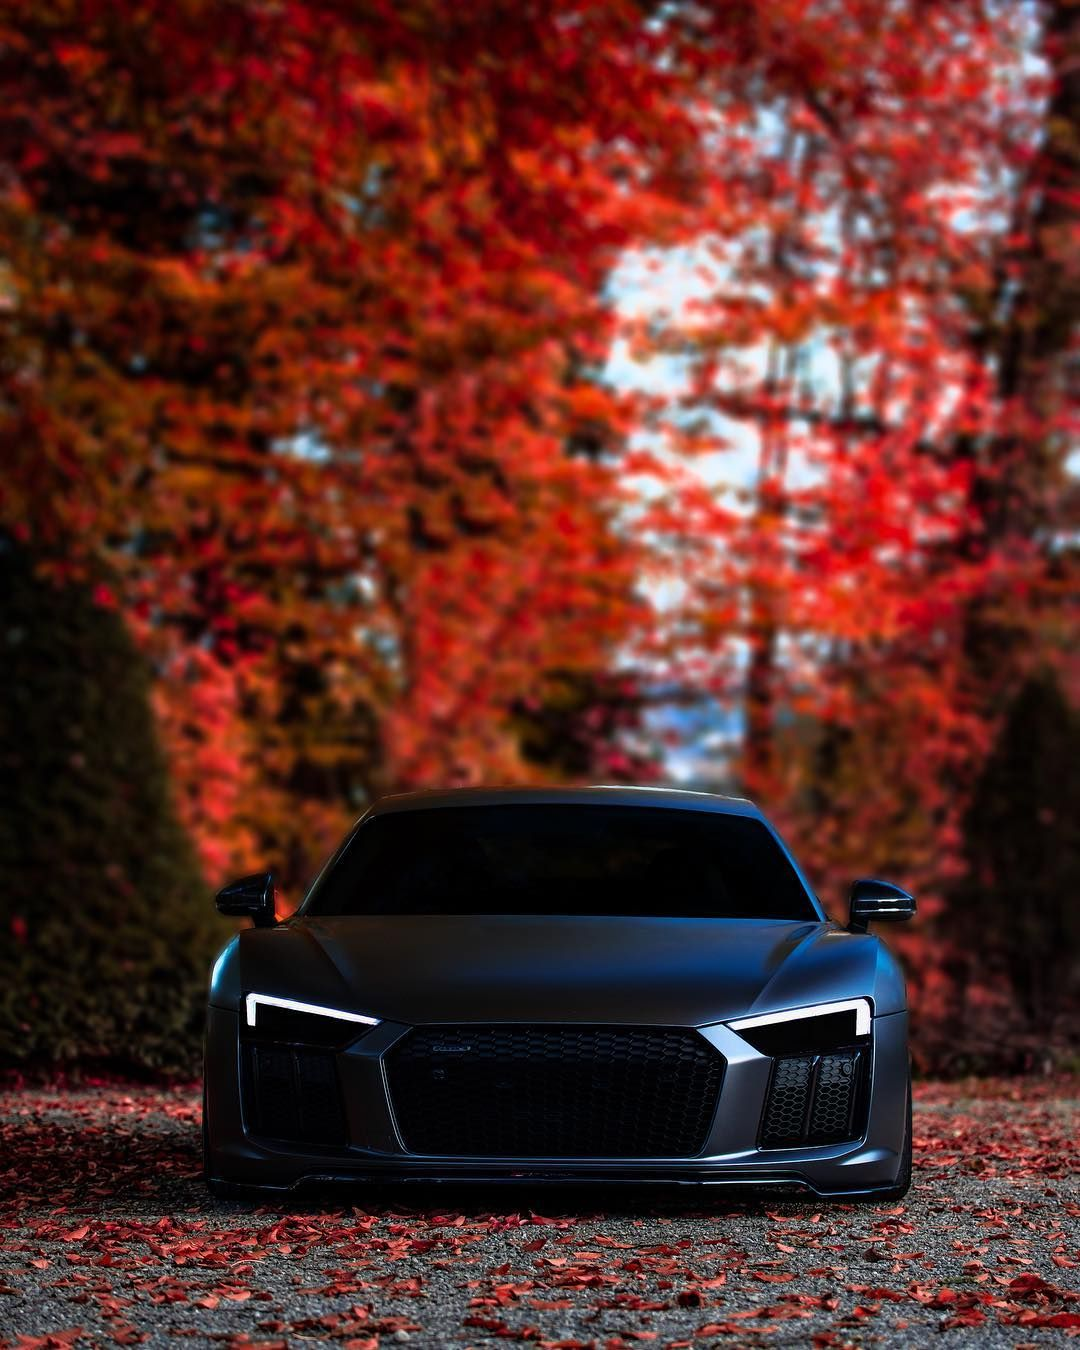 "Photographer on Instagram: ""autumn with this beast is such a pleasure. @signorino__  #audi #r8 #autumn #shooting #bmw #photography #red #color #beast #monster #ring…"" #audir8"